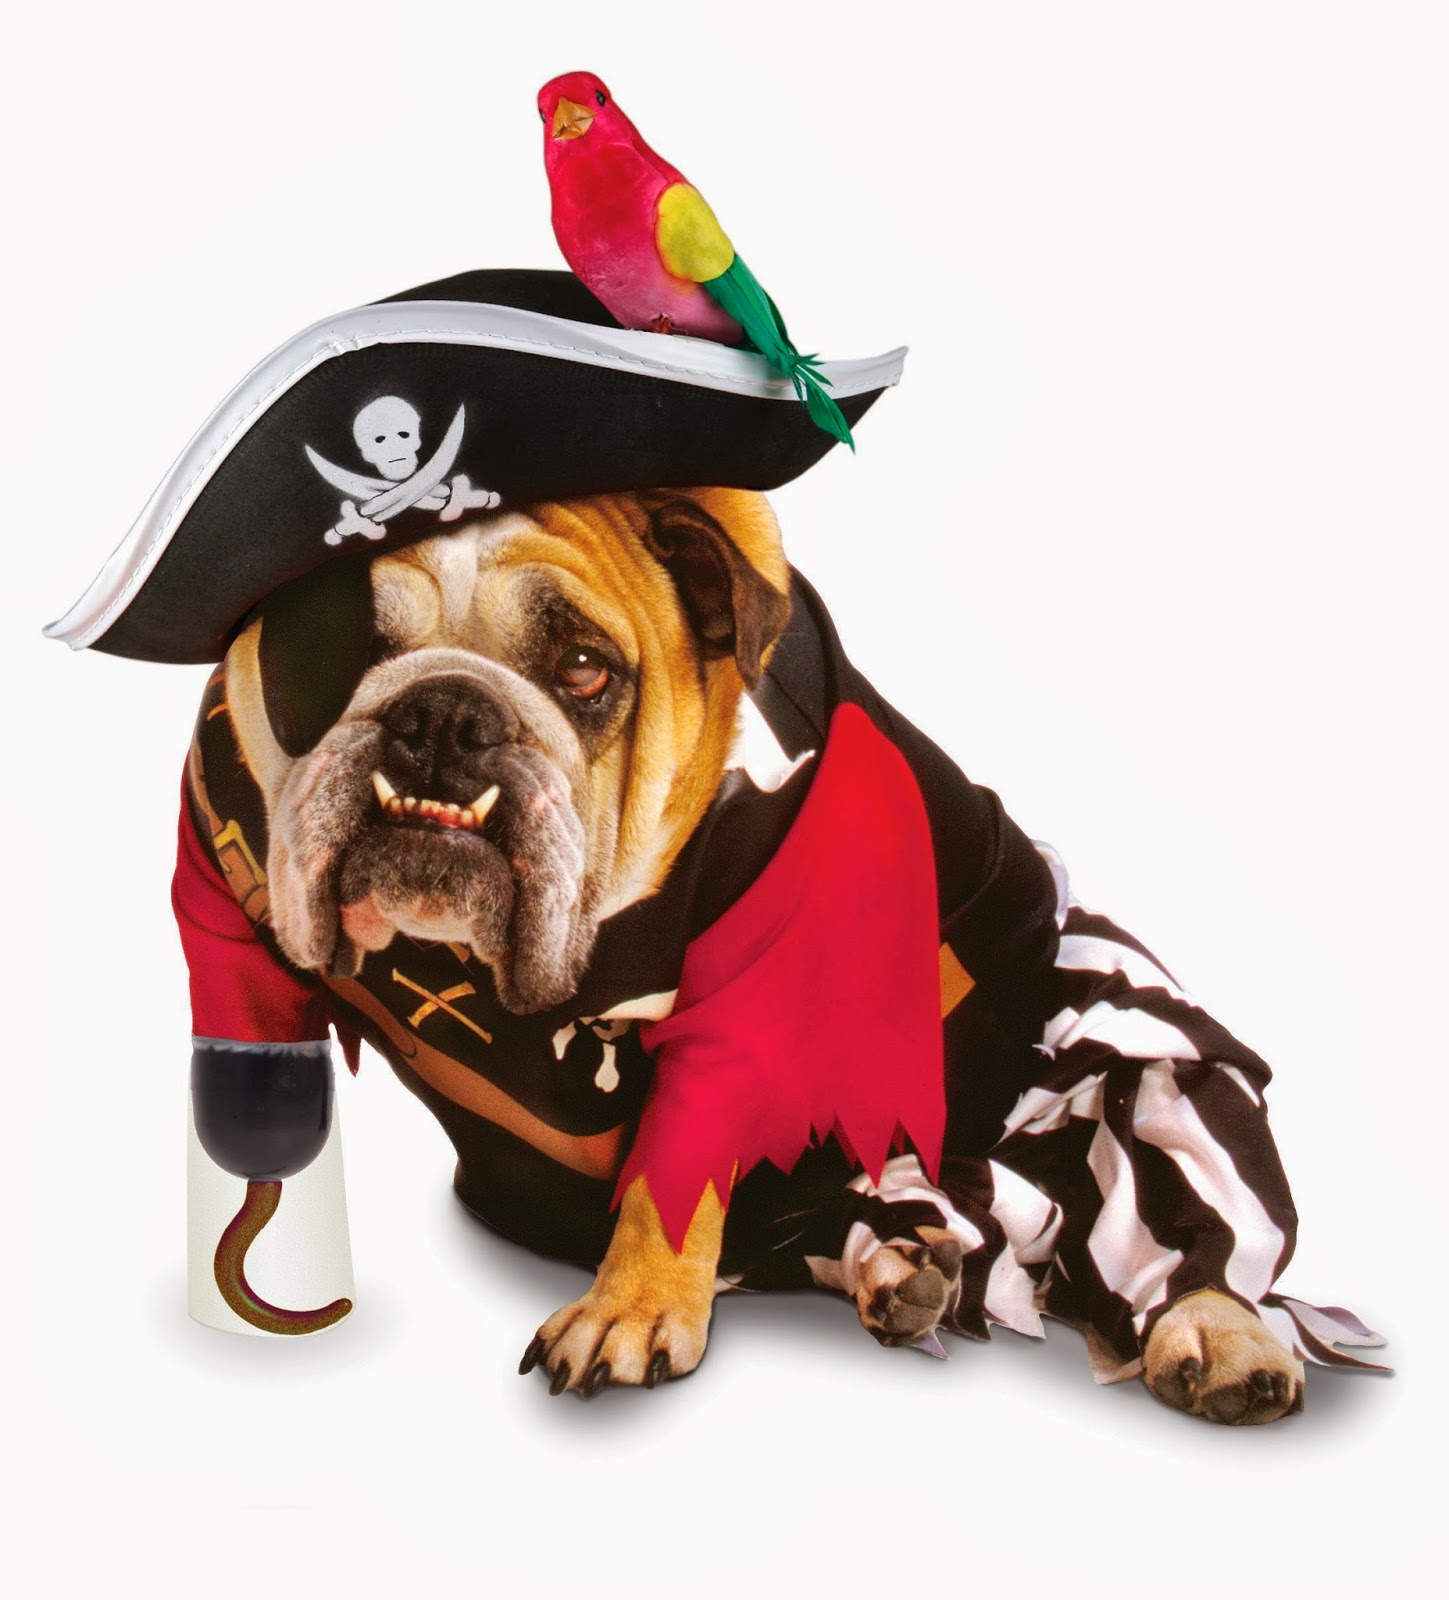 Image of bulldog dressed up in a pirate costume